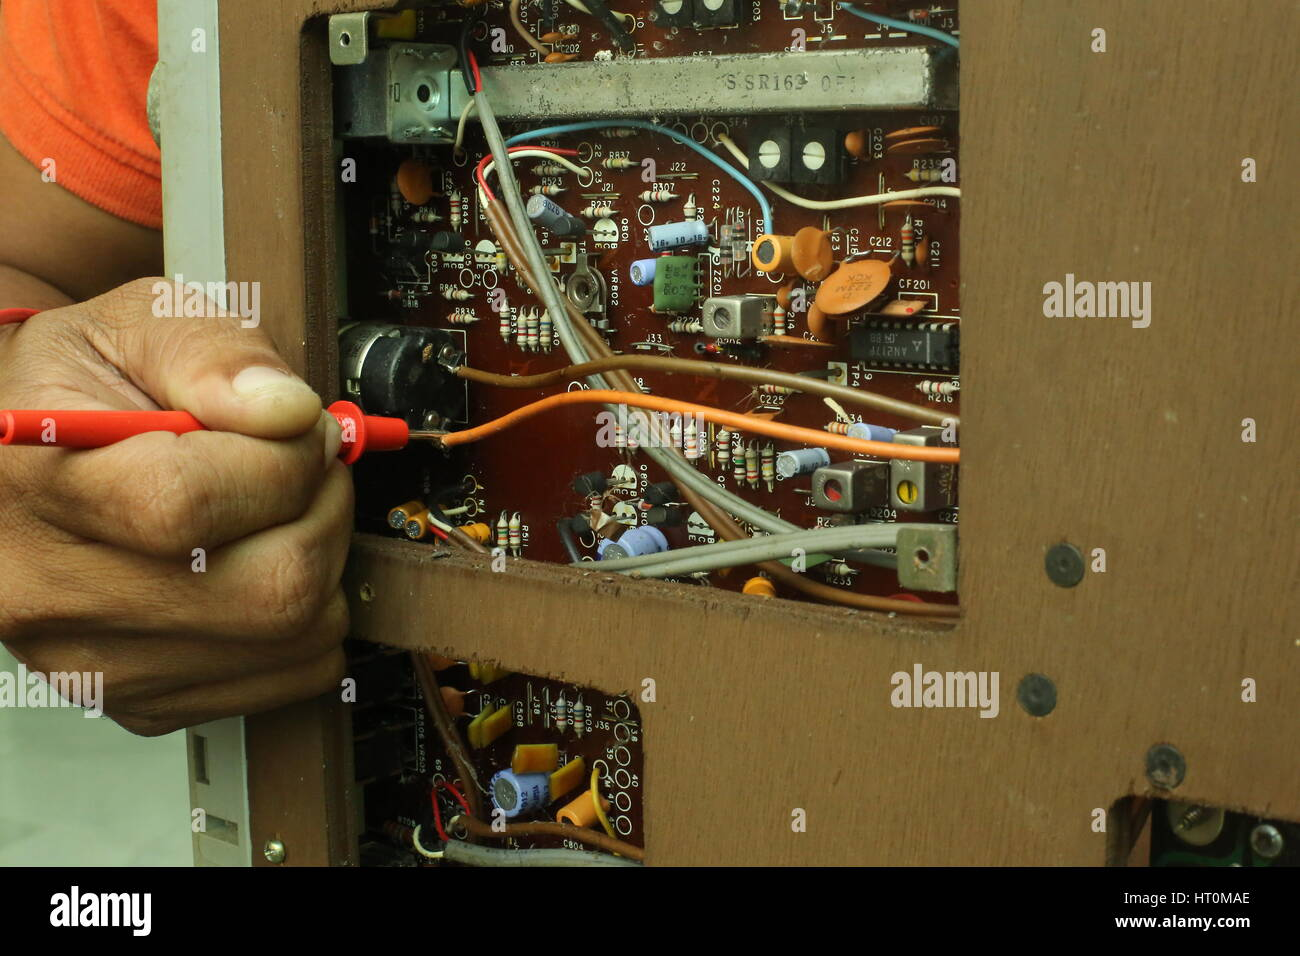 Transistor Radio Circuit Board Stock Photos Repair And Diagnostic Of Electronic Photo Electronics Device Image